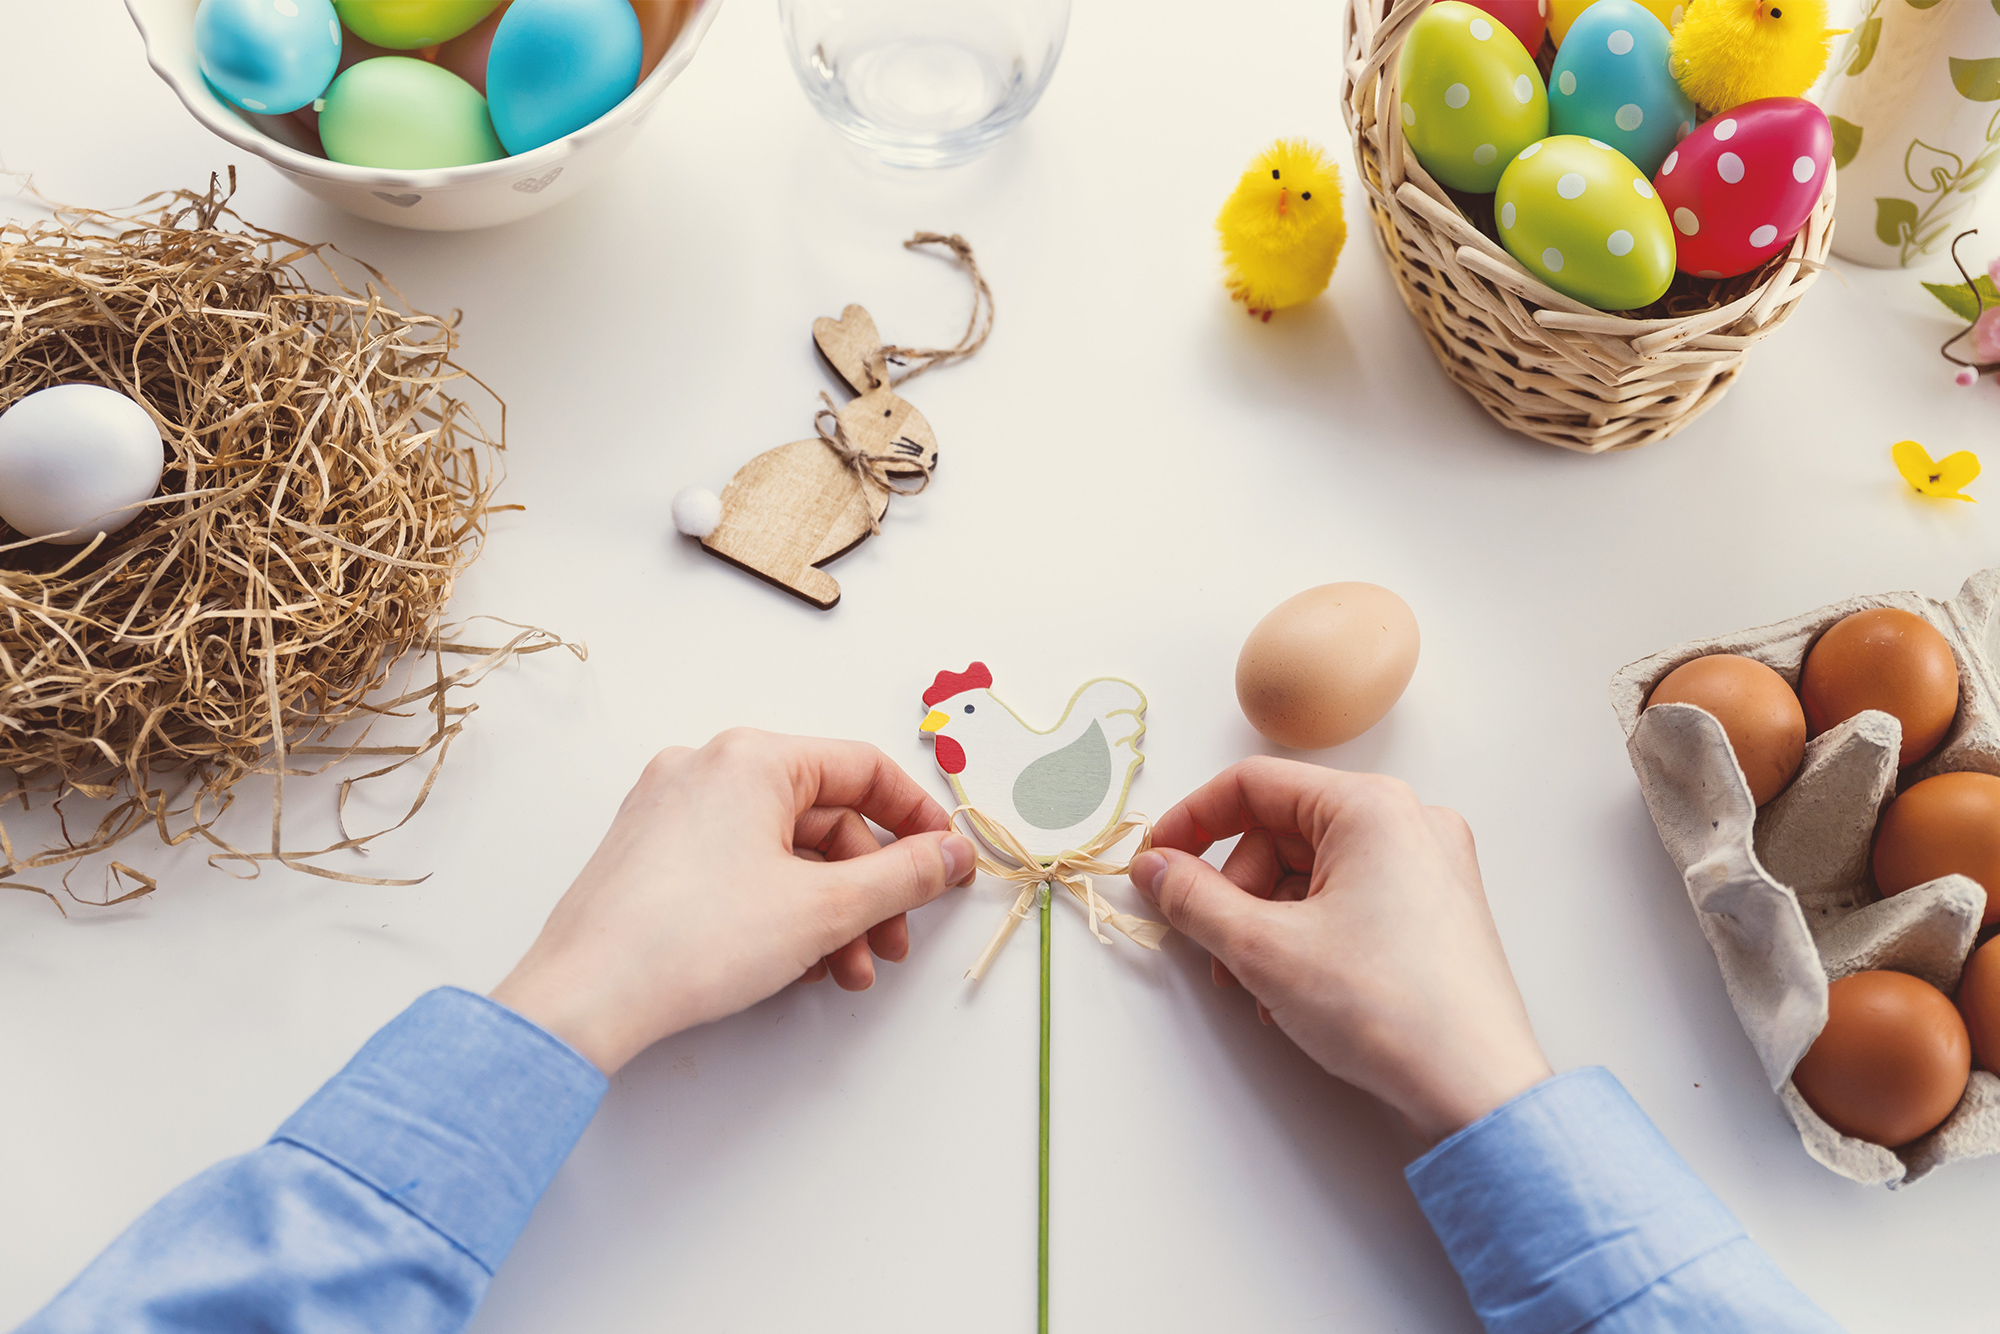 woman preparing easter eggs and easter decorations